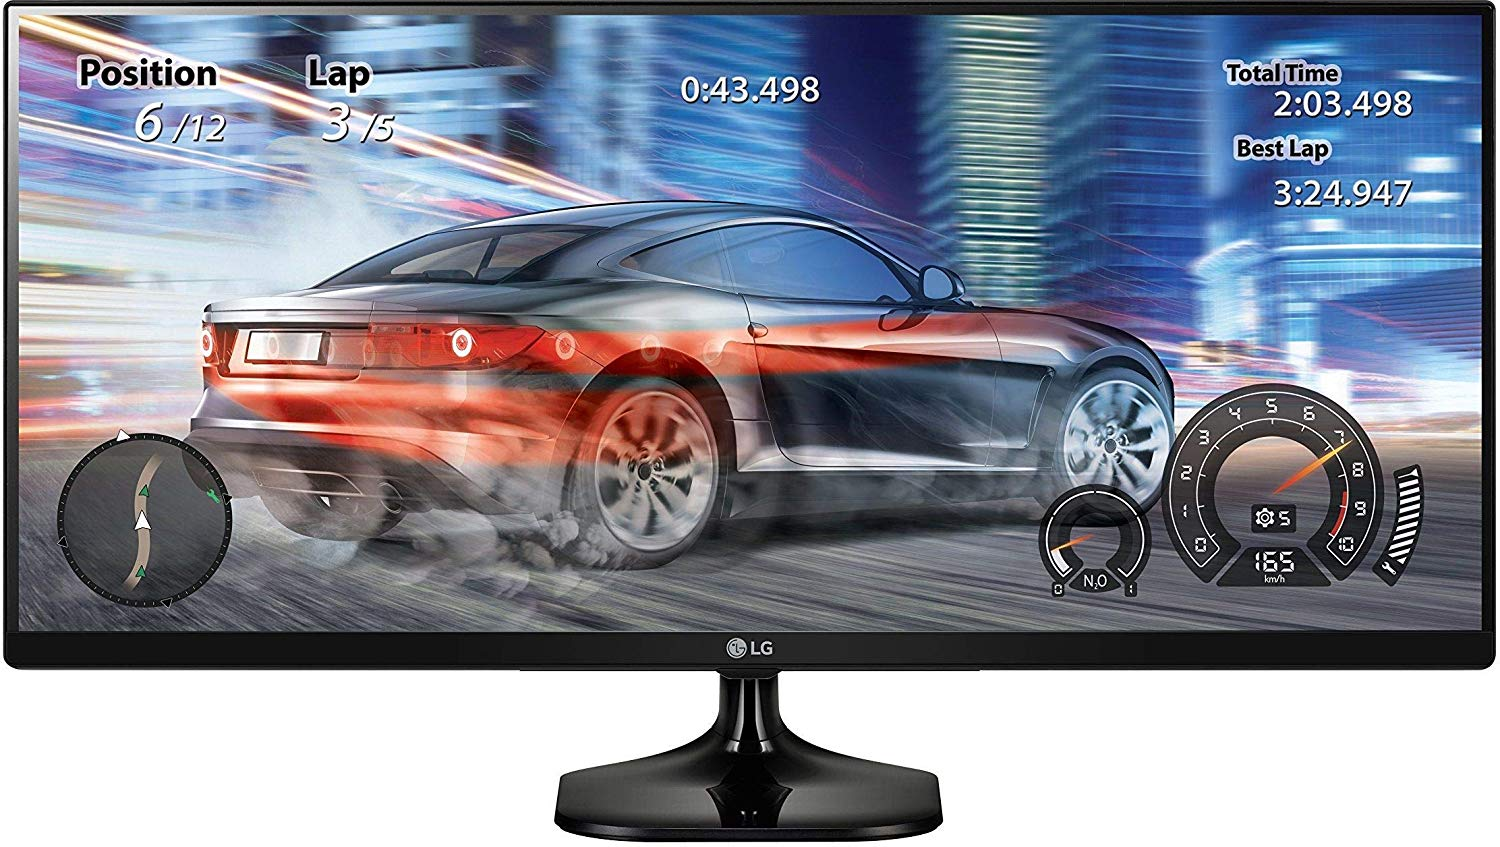 LG 25-inch Full HD Ready Monitor